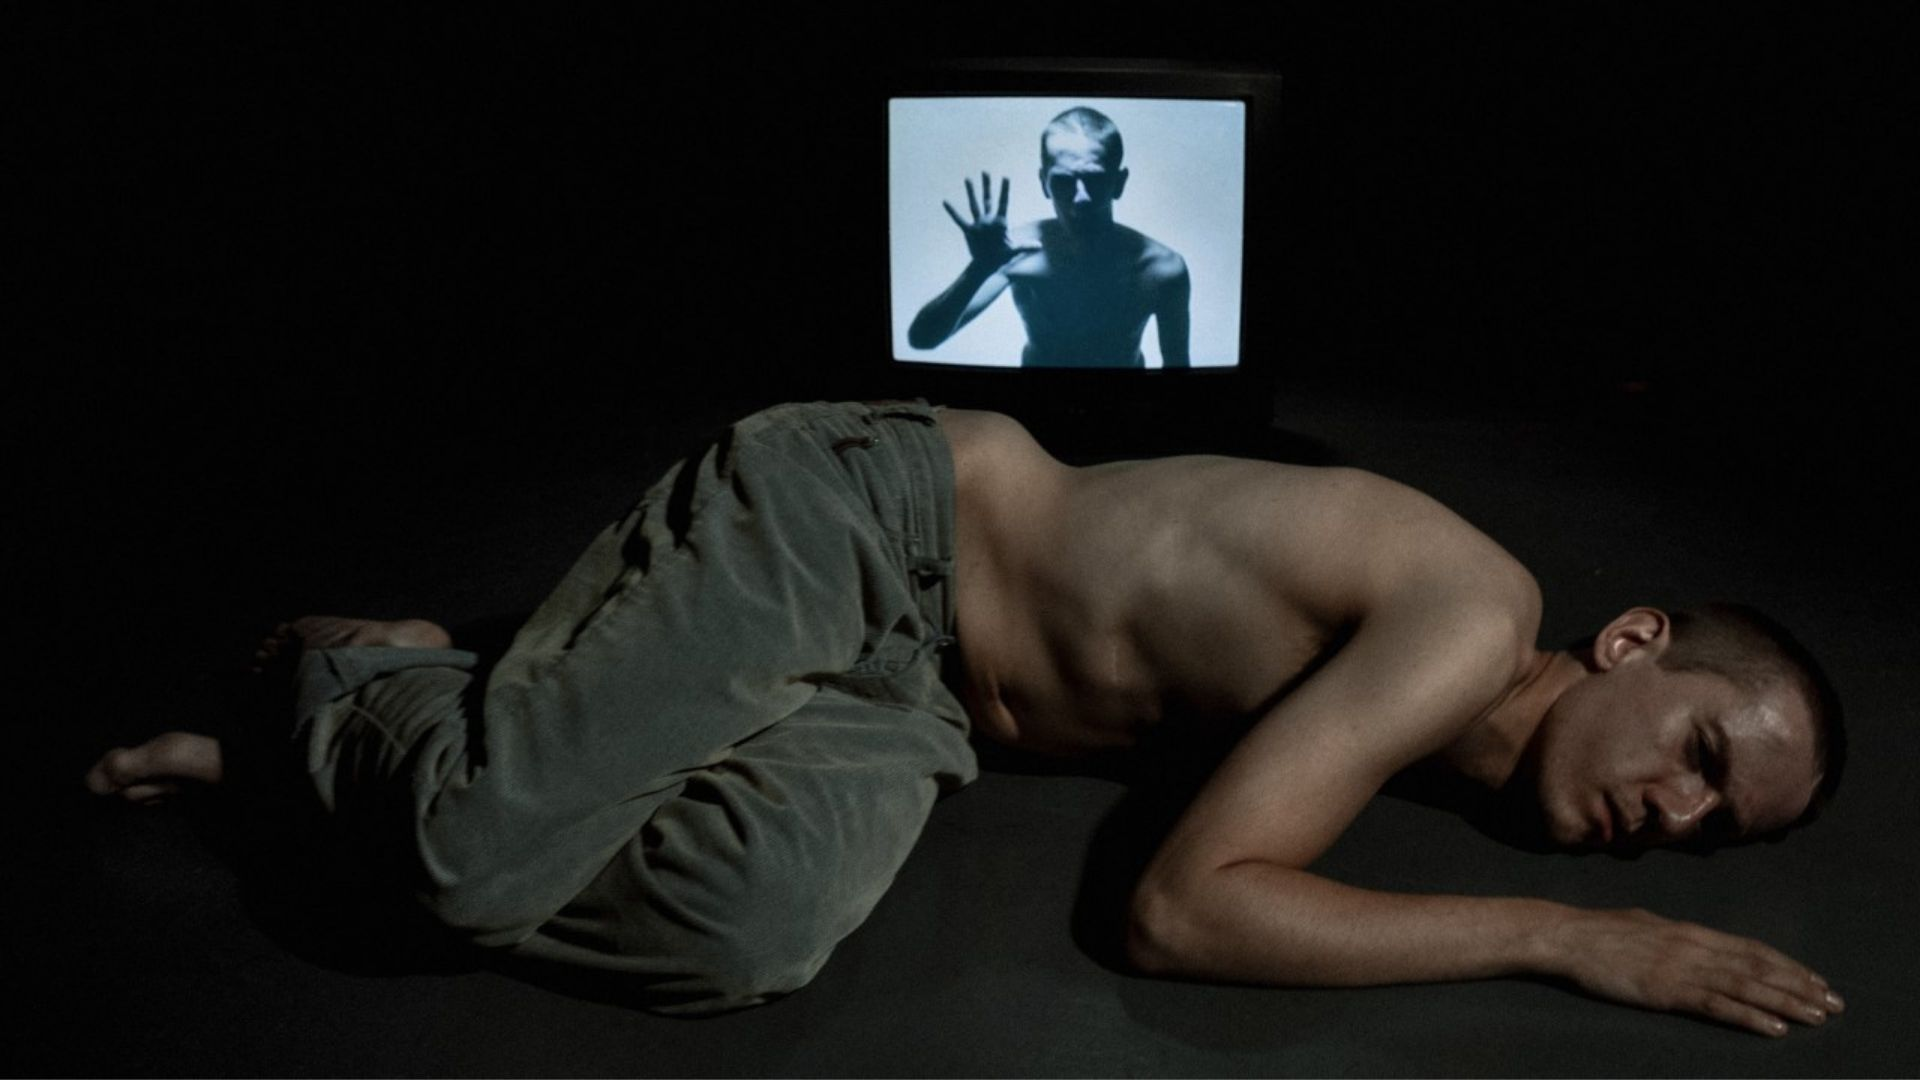 Robert, a young man in his 20s, topless wearing green trousers, lying on the ground. Behind him is a tv with an image of himself on the screen.